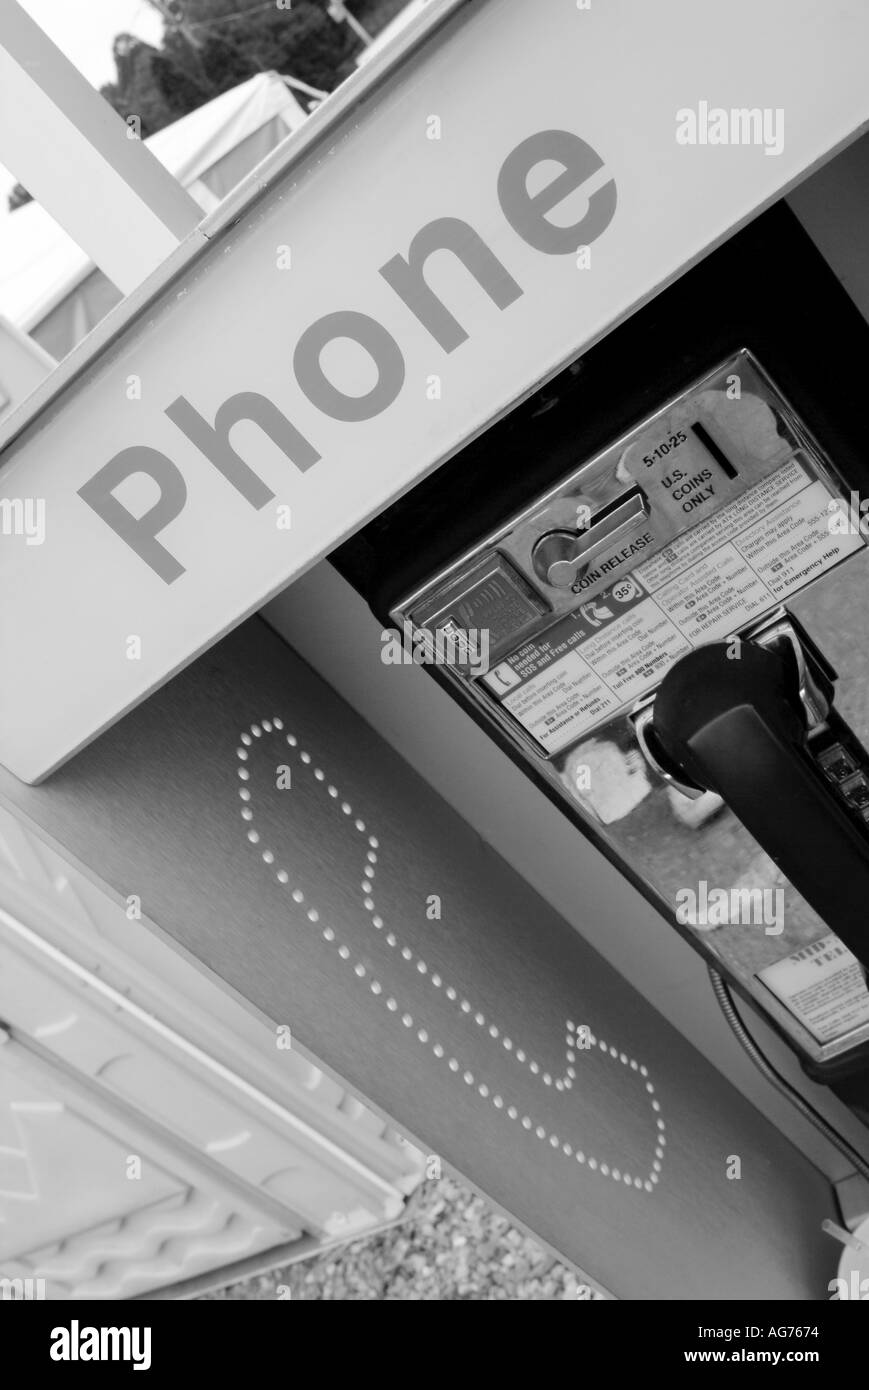 american pay phone box contact telephone telecoms telecommunication talk speak hear button receiver hang up quarter cent nickel - Stock Image